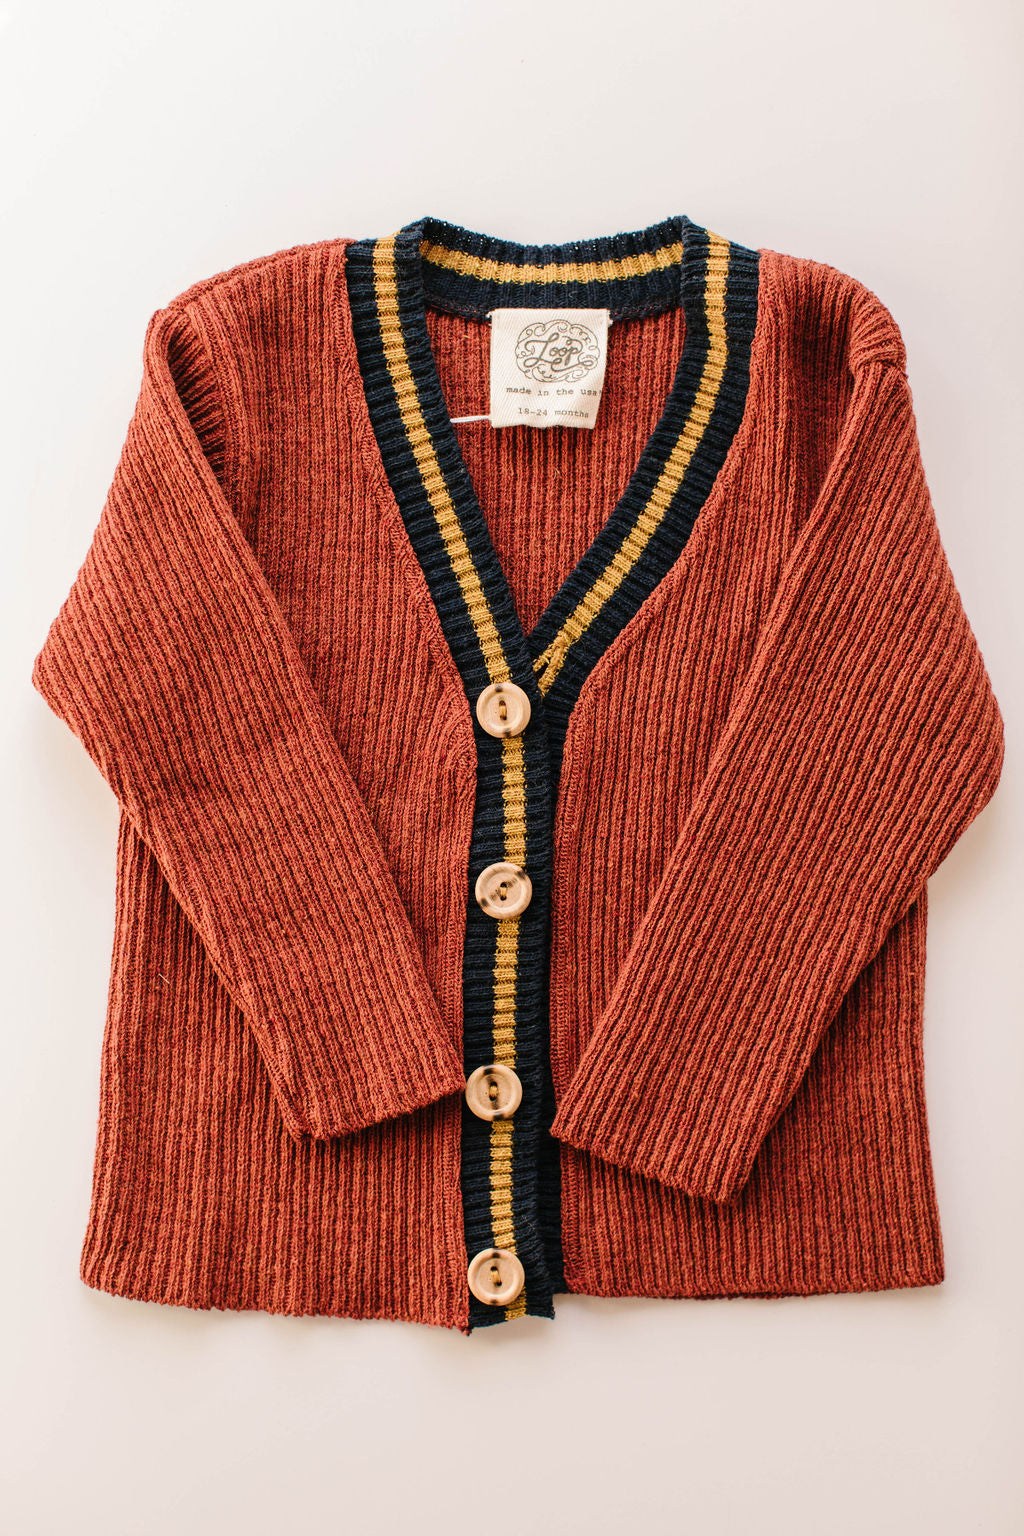 Academic Recycled Cotton Sweater